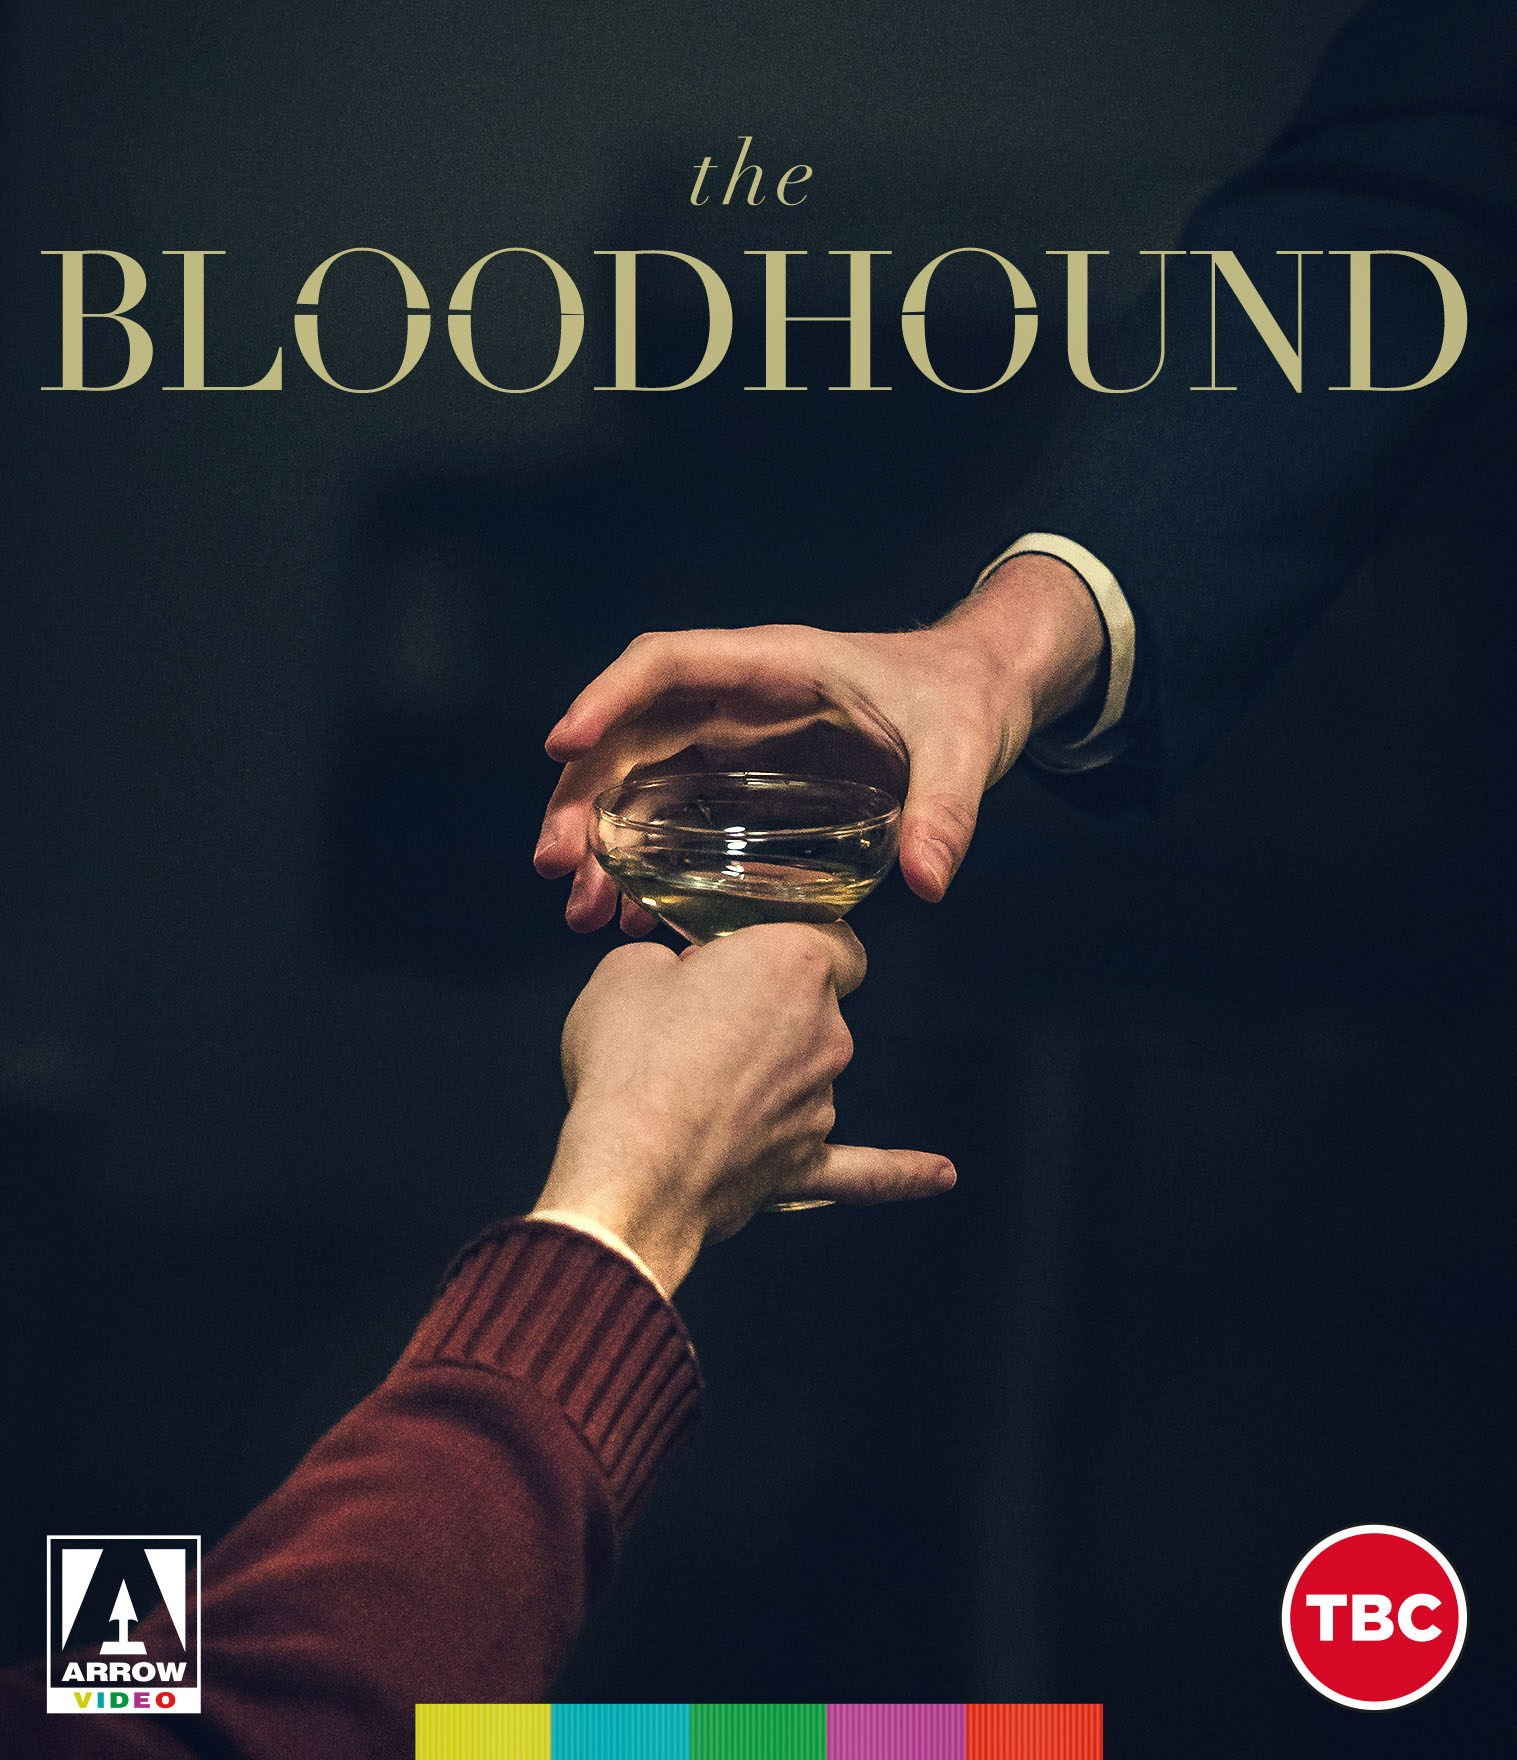 the-bloodhound-movie-film-horror-mystery-2020-poe-arrow-video-streaming-1